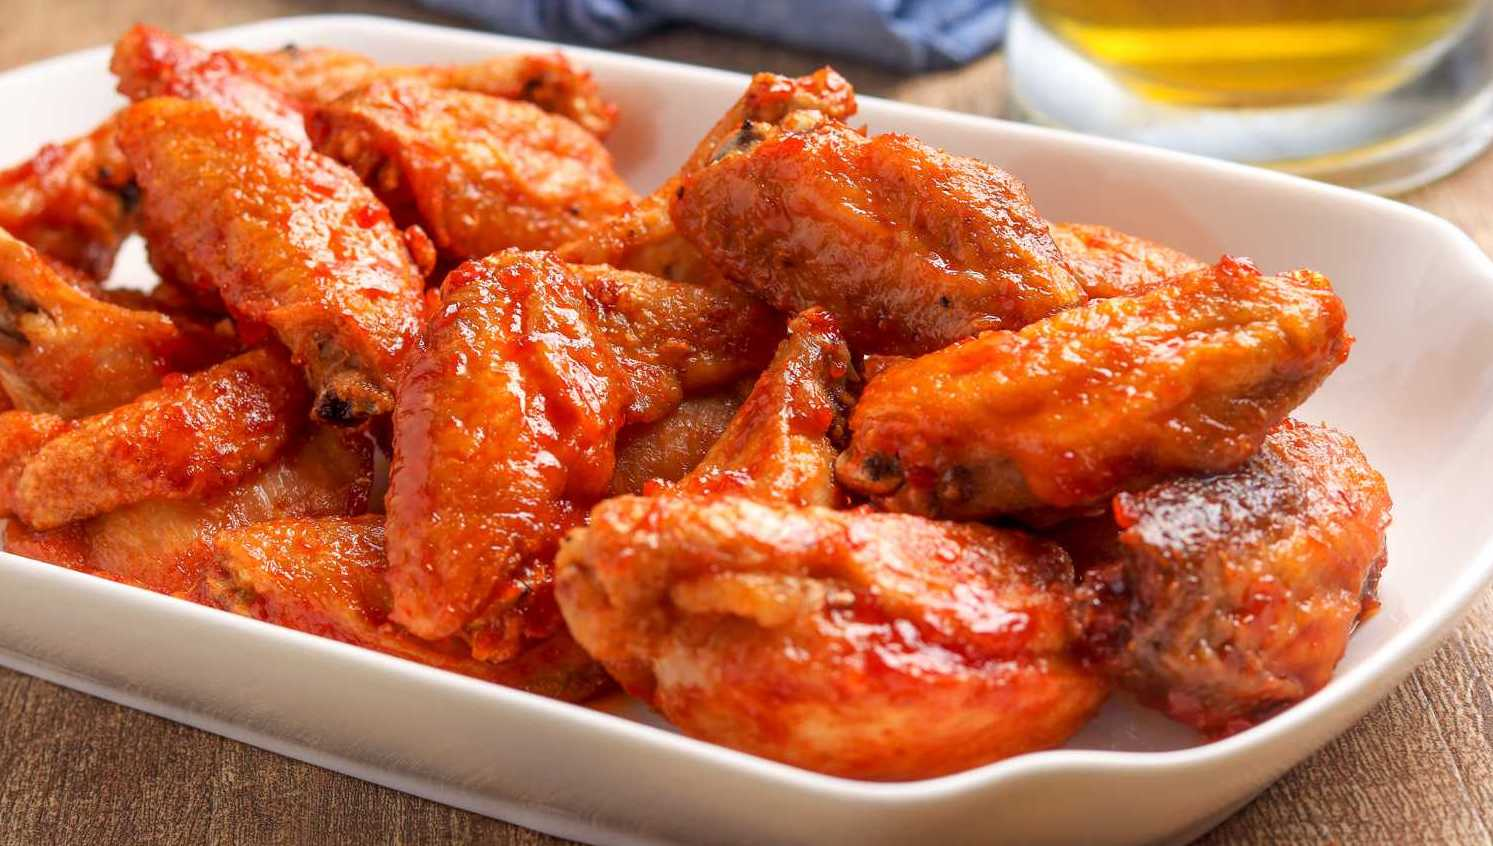 traditional-chicken-wings-912937-10-5b3f8c9ac9e77c00547241ab.jpg